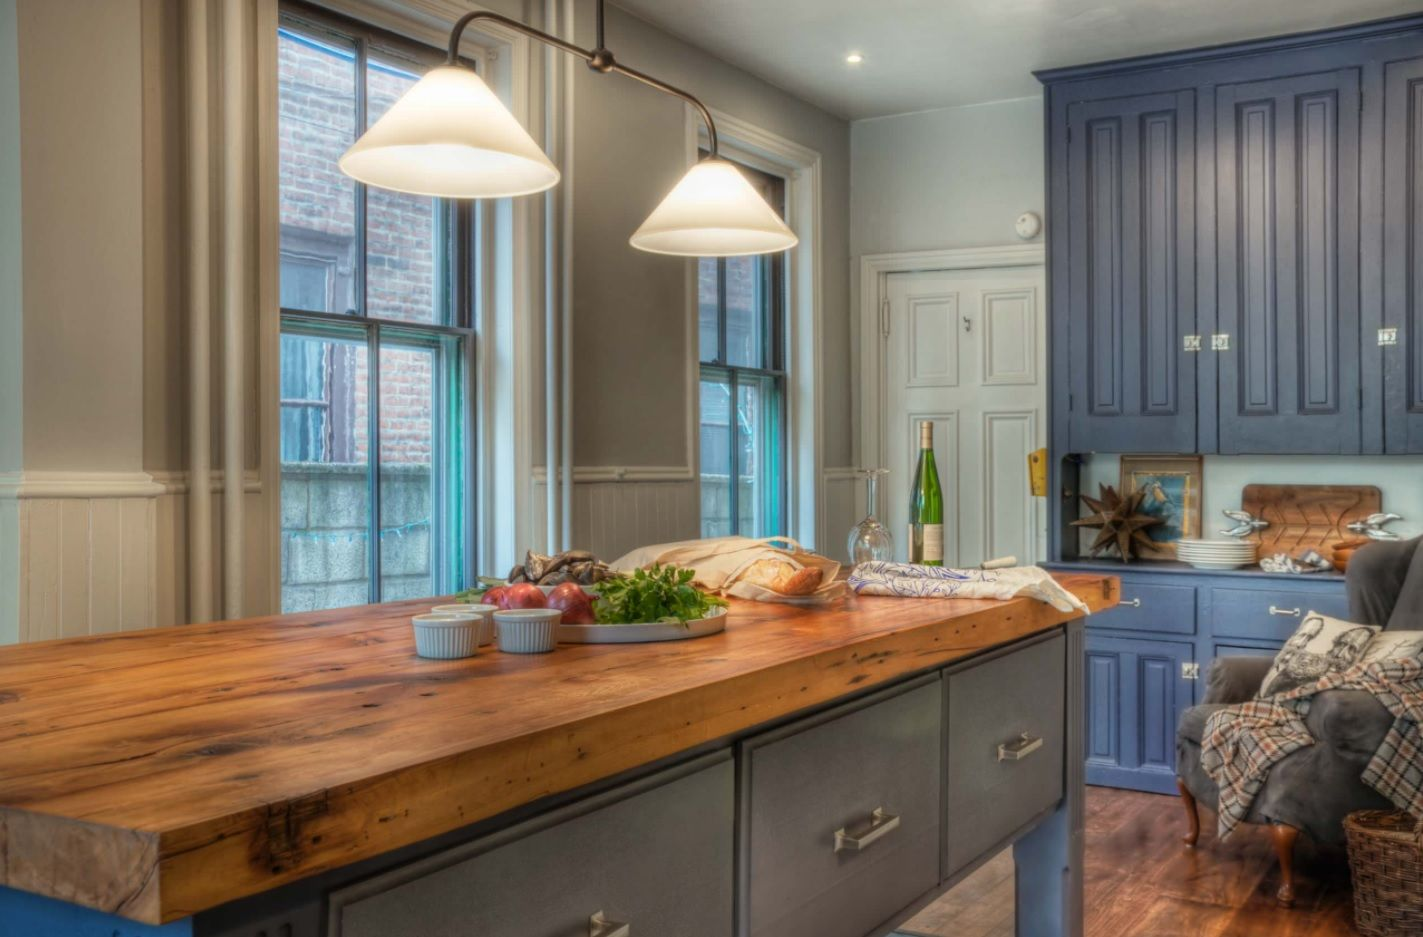 Butcher Block Countertop in Modern Kitchen Interior. Ideal fit for Casual, rustic and Classic mix of styles